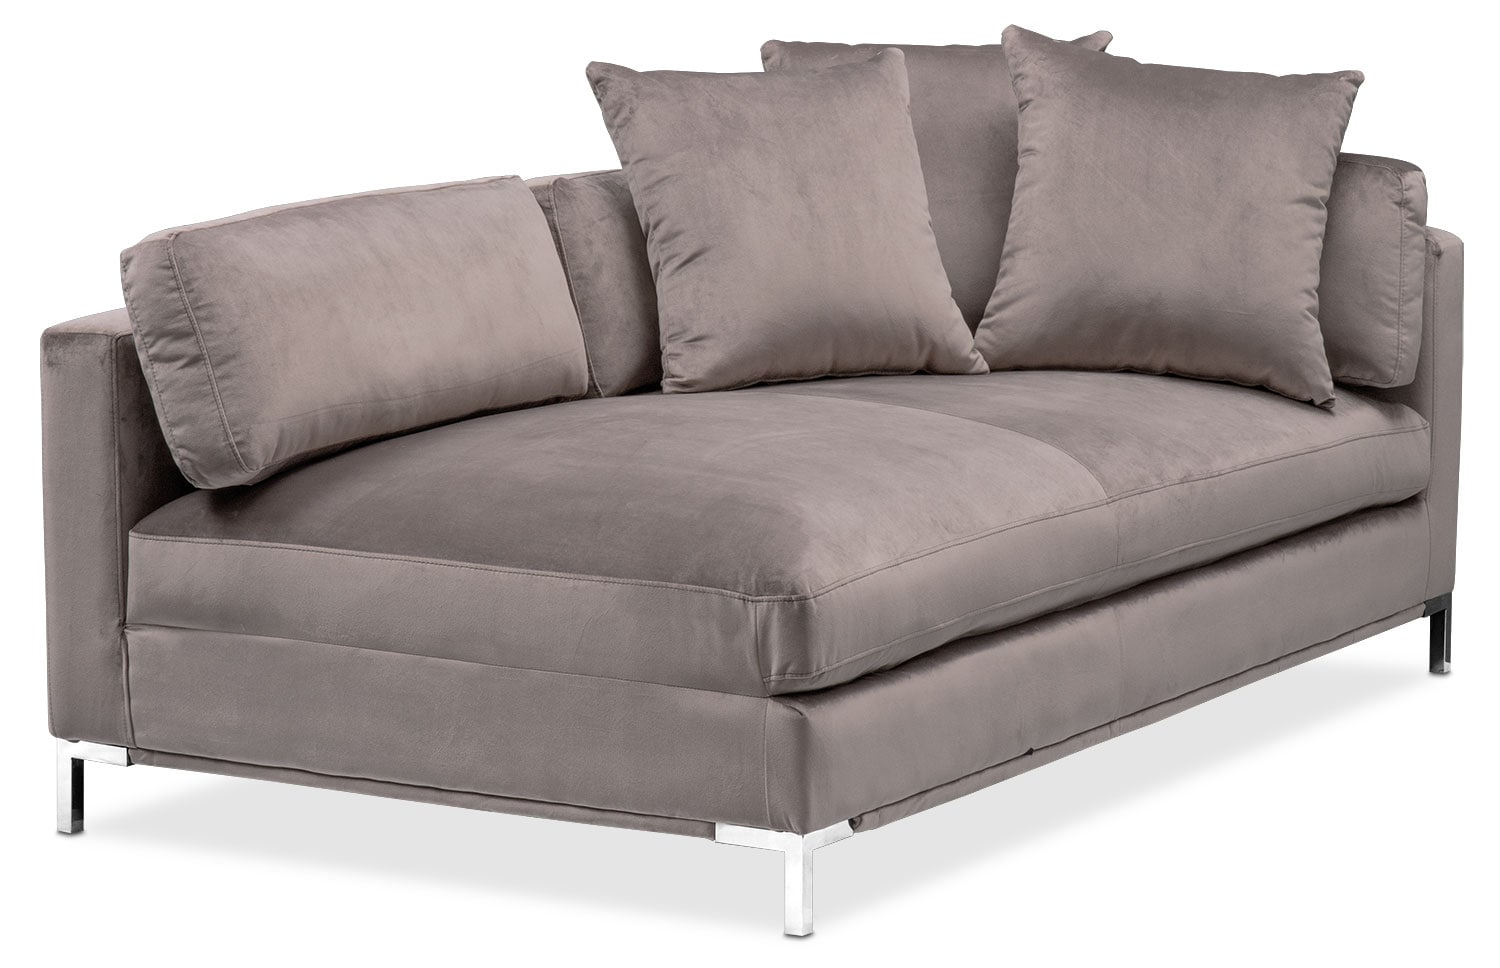 Living Room Furniture - Moda Right-Facing Chaise - Oyster